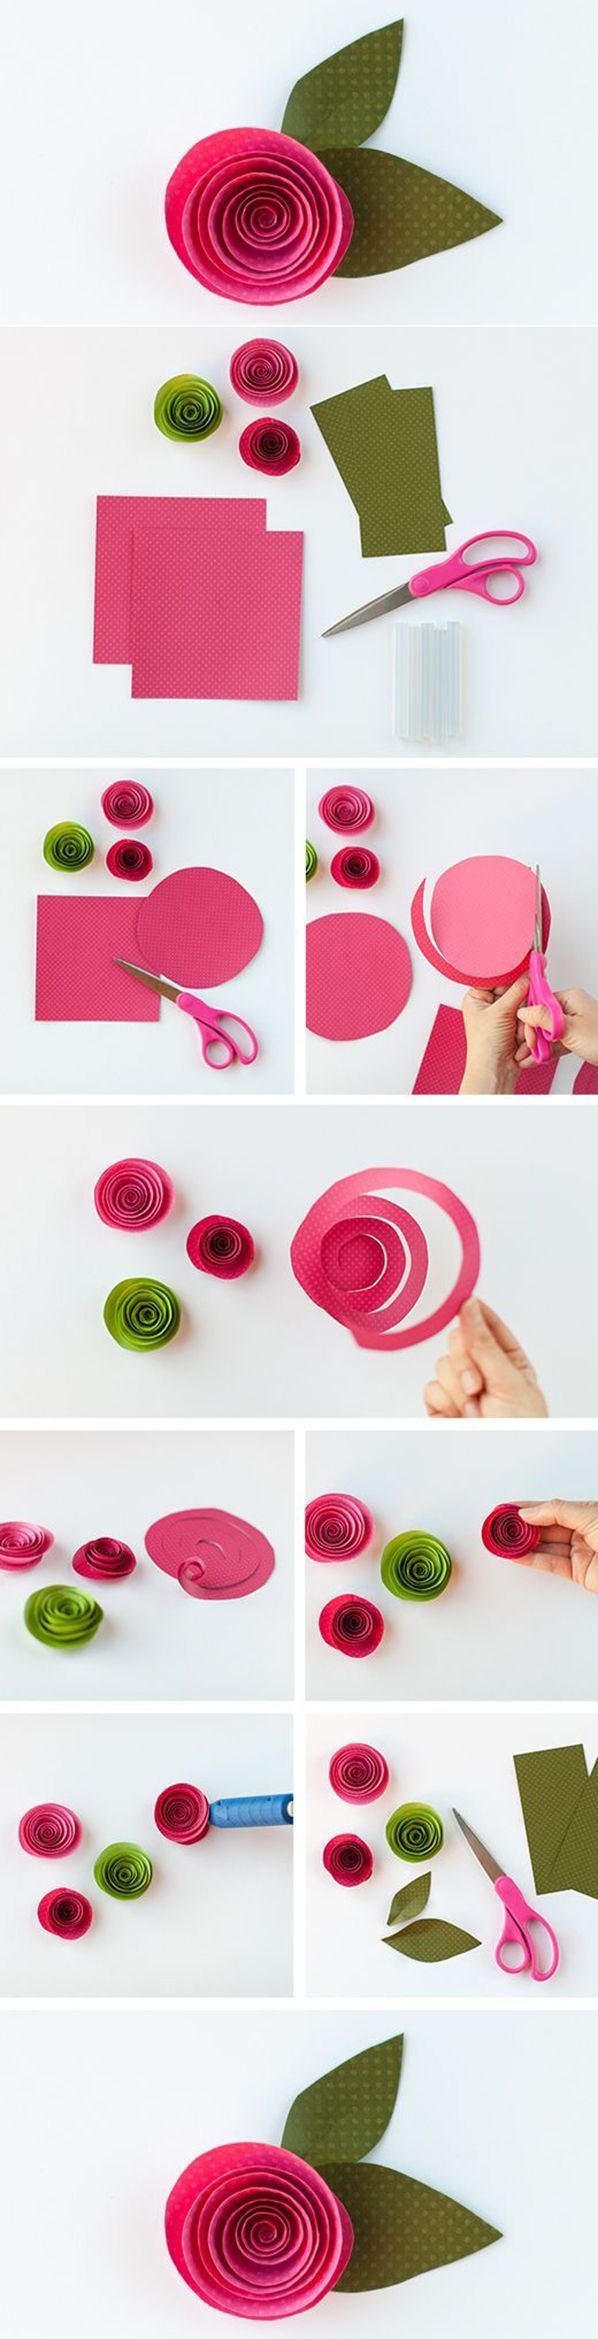 Pin By Lori Matson On Apples Pinterest Flower Diy Craft And Diy